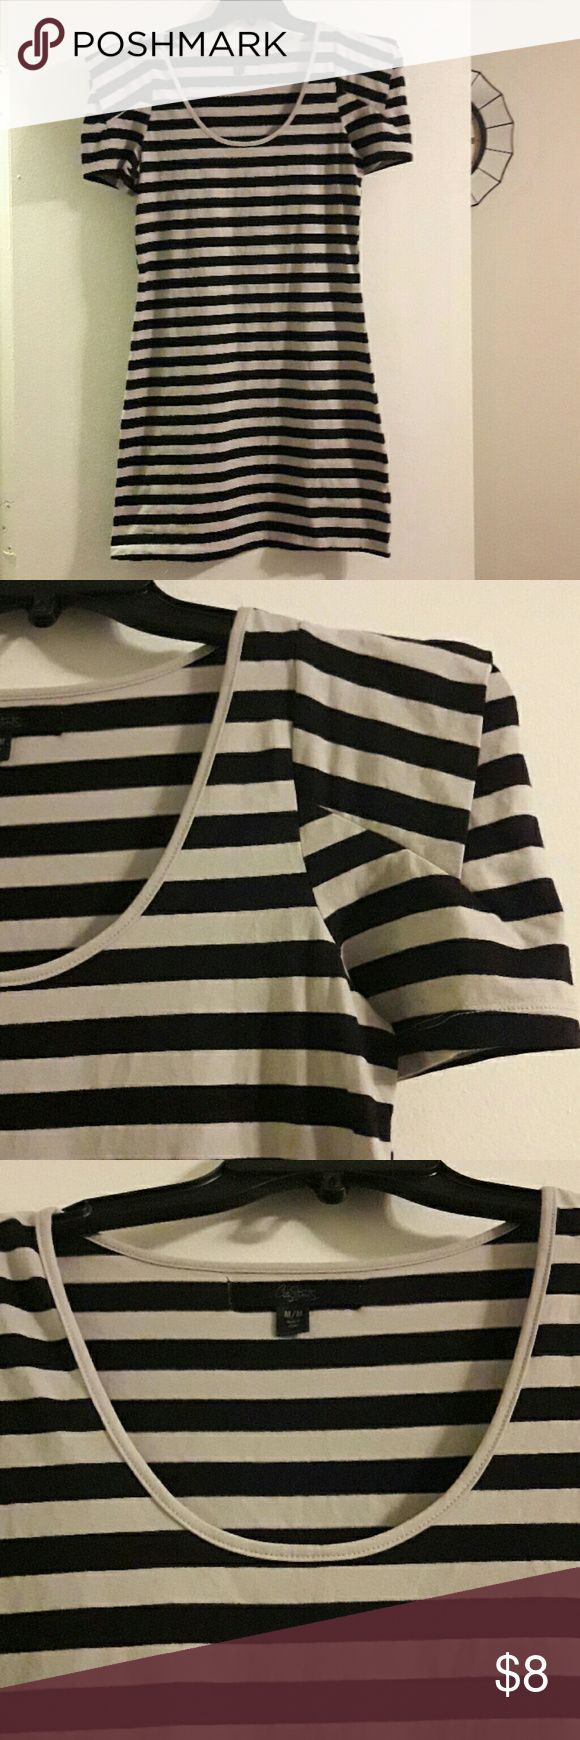 Black and Grey Striped Bodycon Dress Med NWOT City Streets brand Bodycon dress with black and Grey stripes. Short sleeves, dress is about 32 inches long from shoulder to bottom hem. Size medium, new without tag. City Streets Dresses Mini